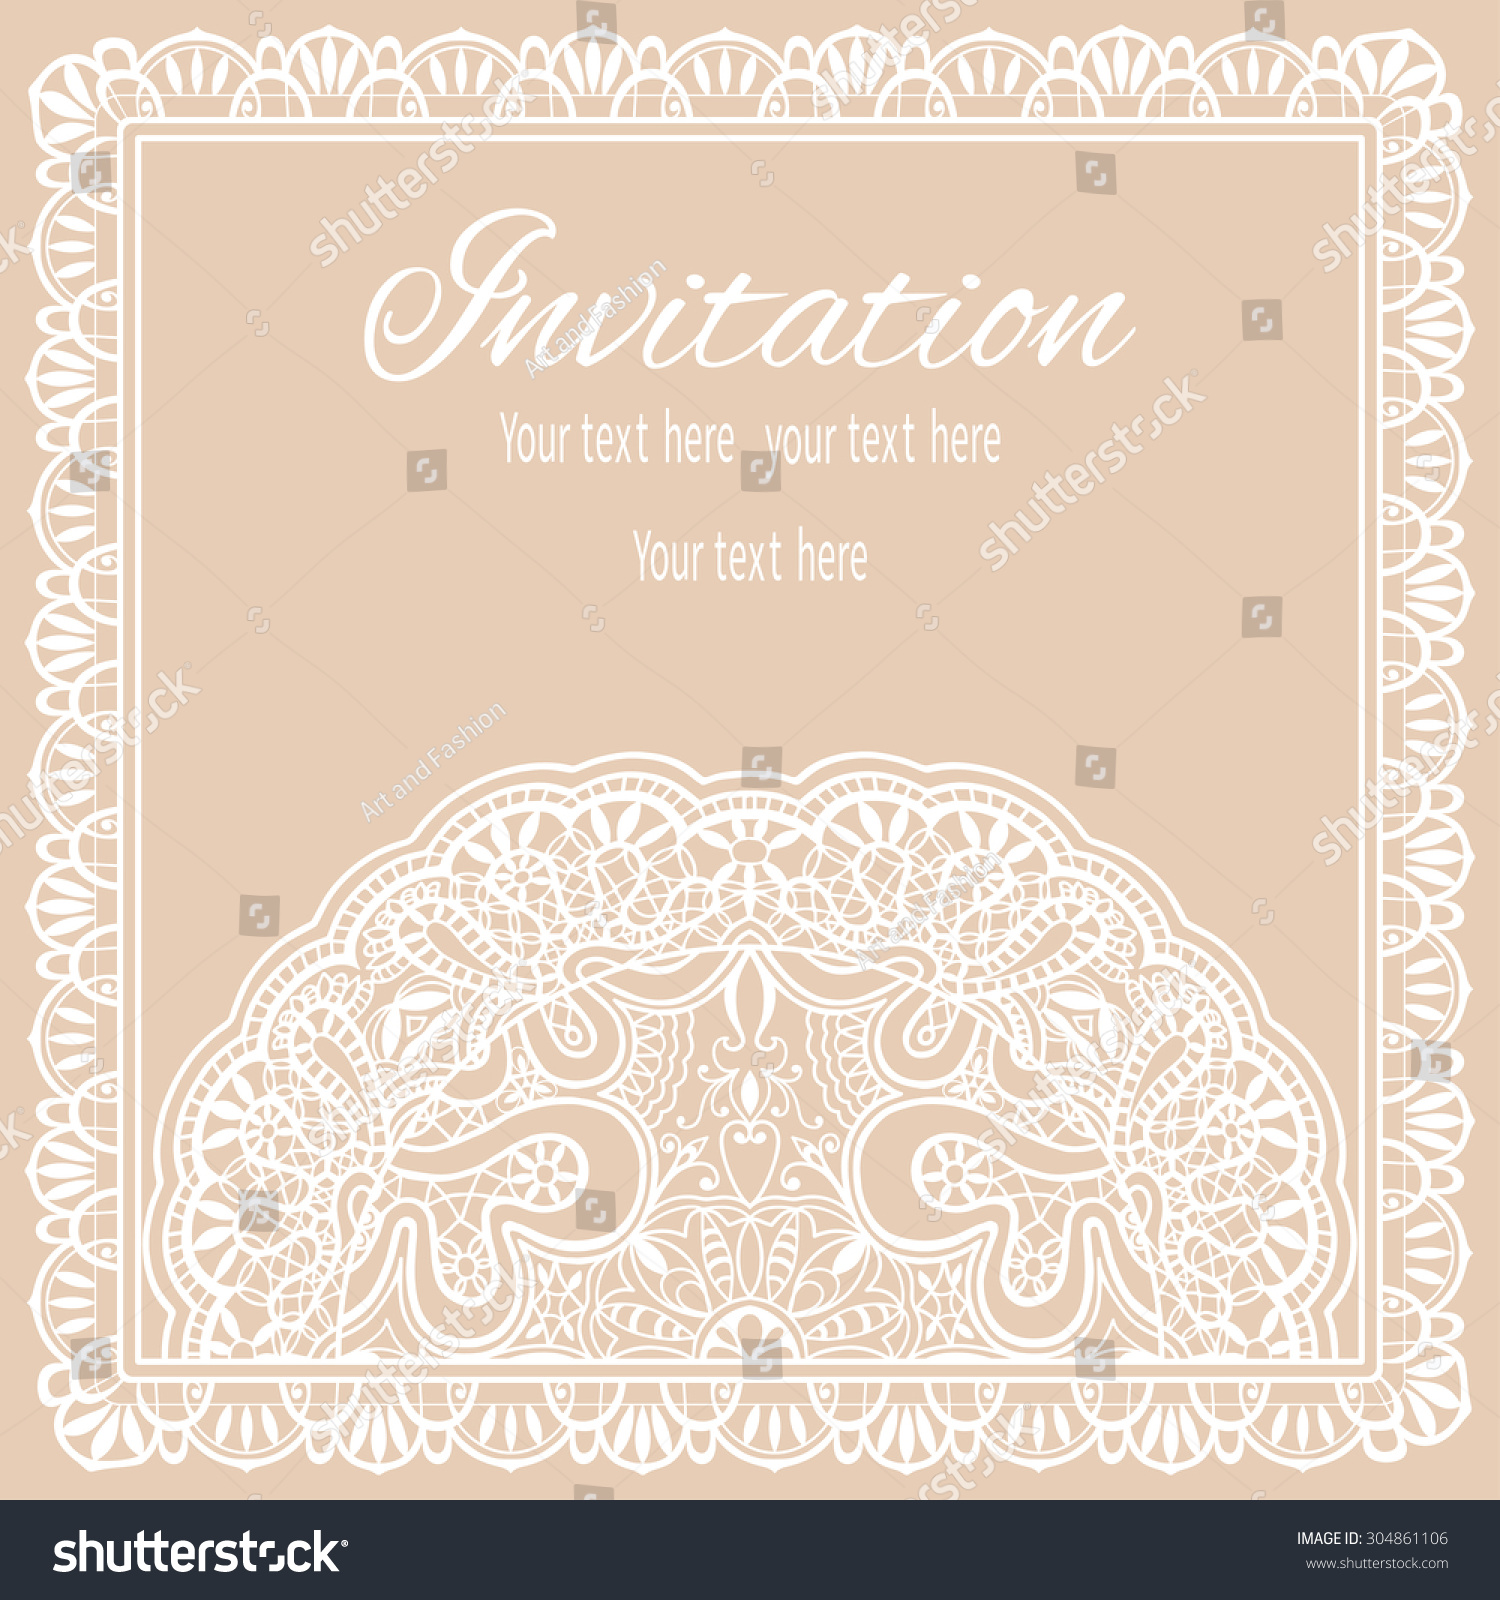 Wedding Invitation Greeting Card Design Lace Stock Vector ...